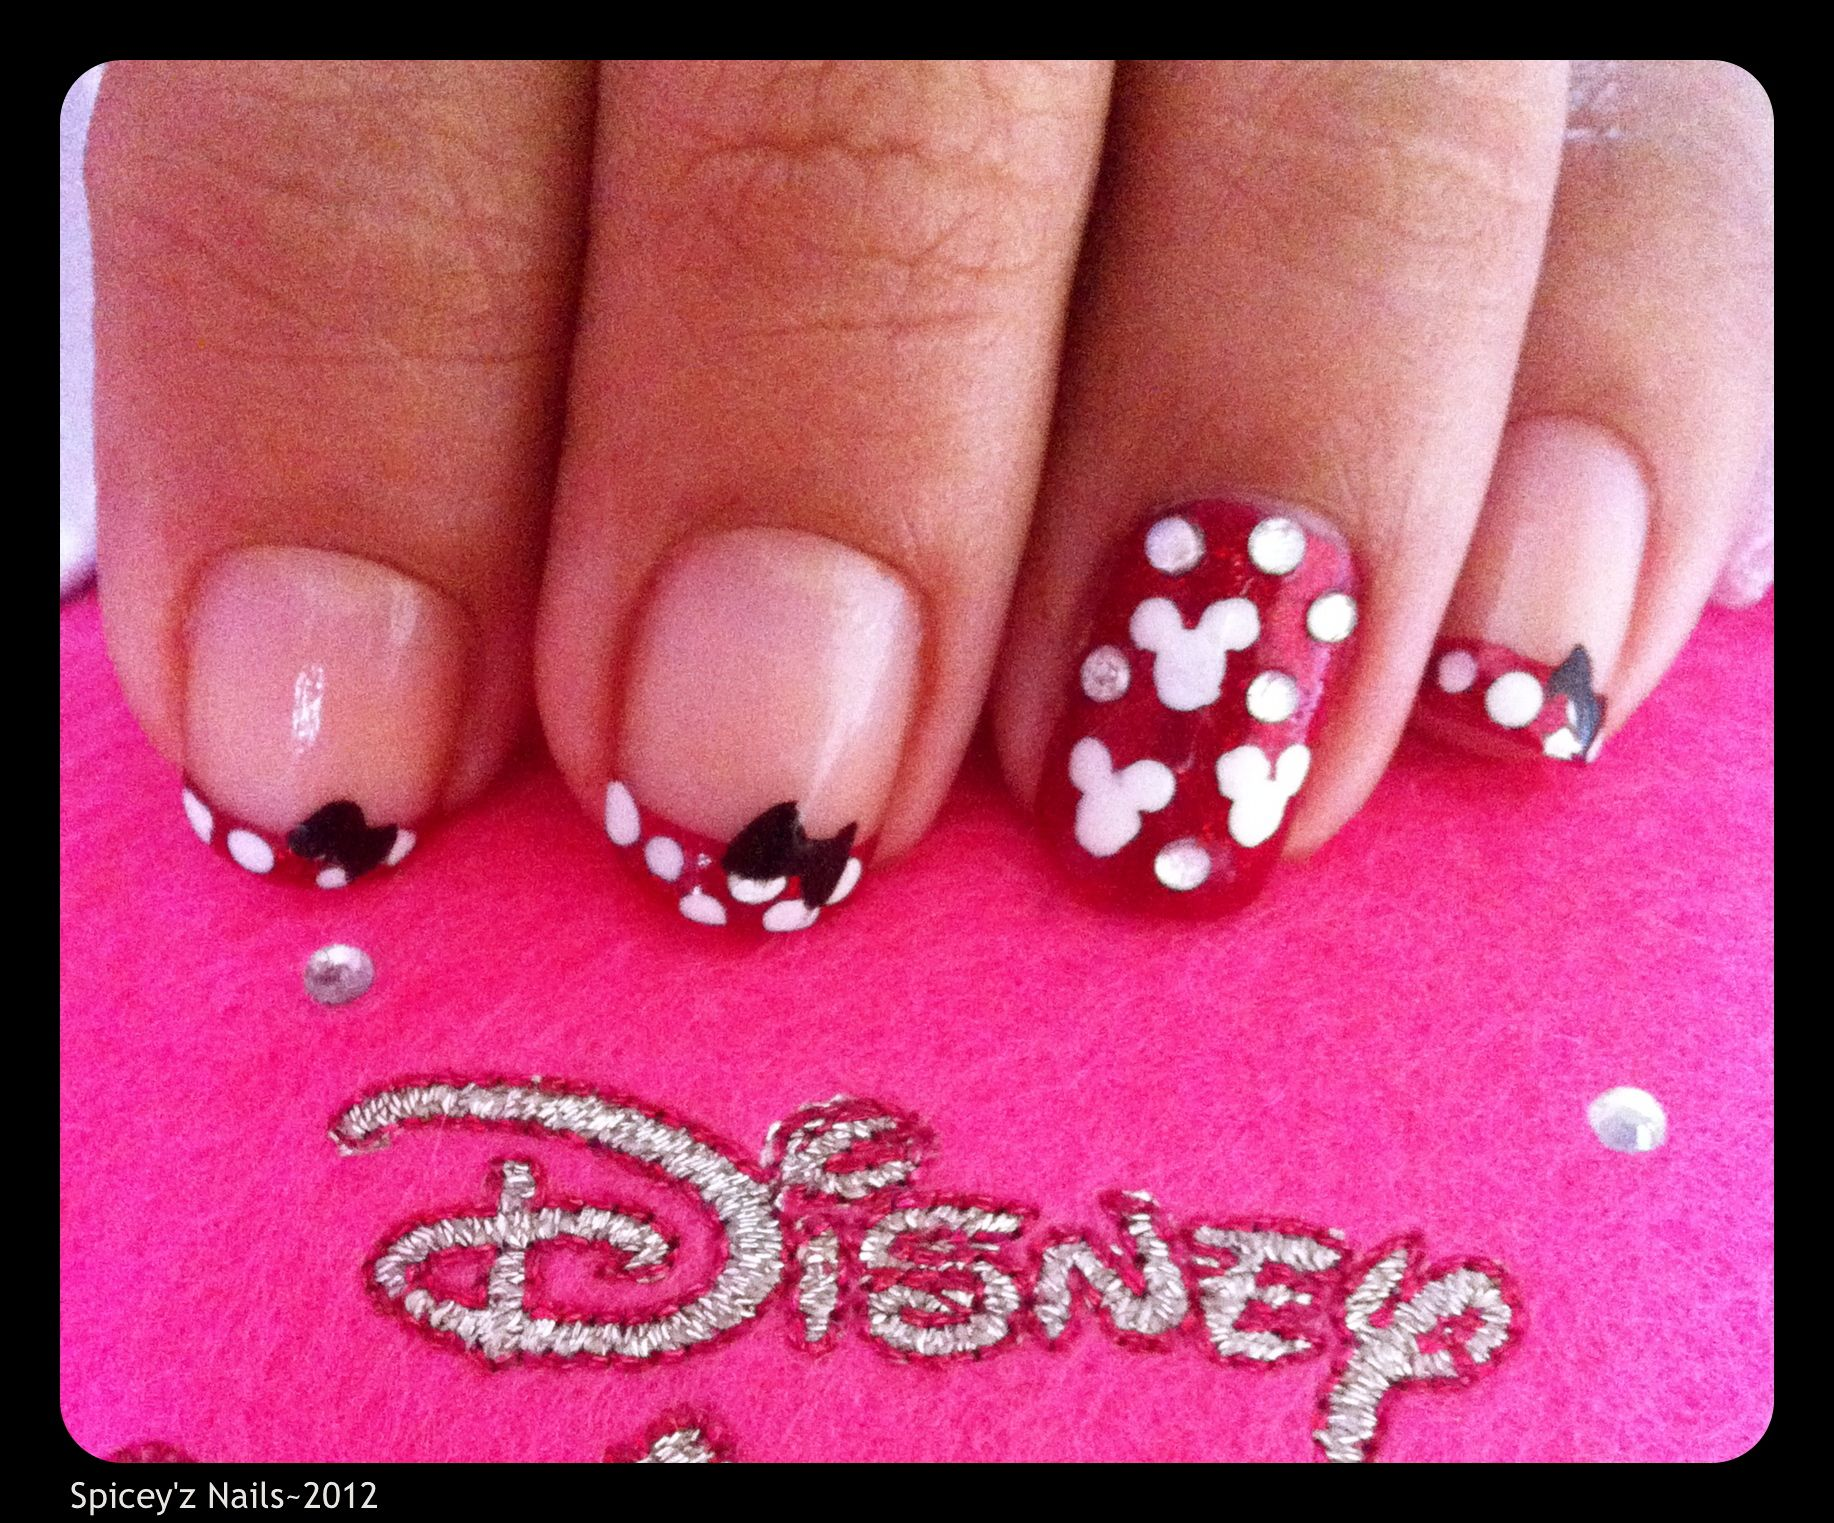 My Minnie Mouse Nail Art....   Spicey\'z Nails!..<3   Pinterest ...